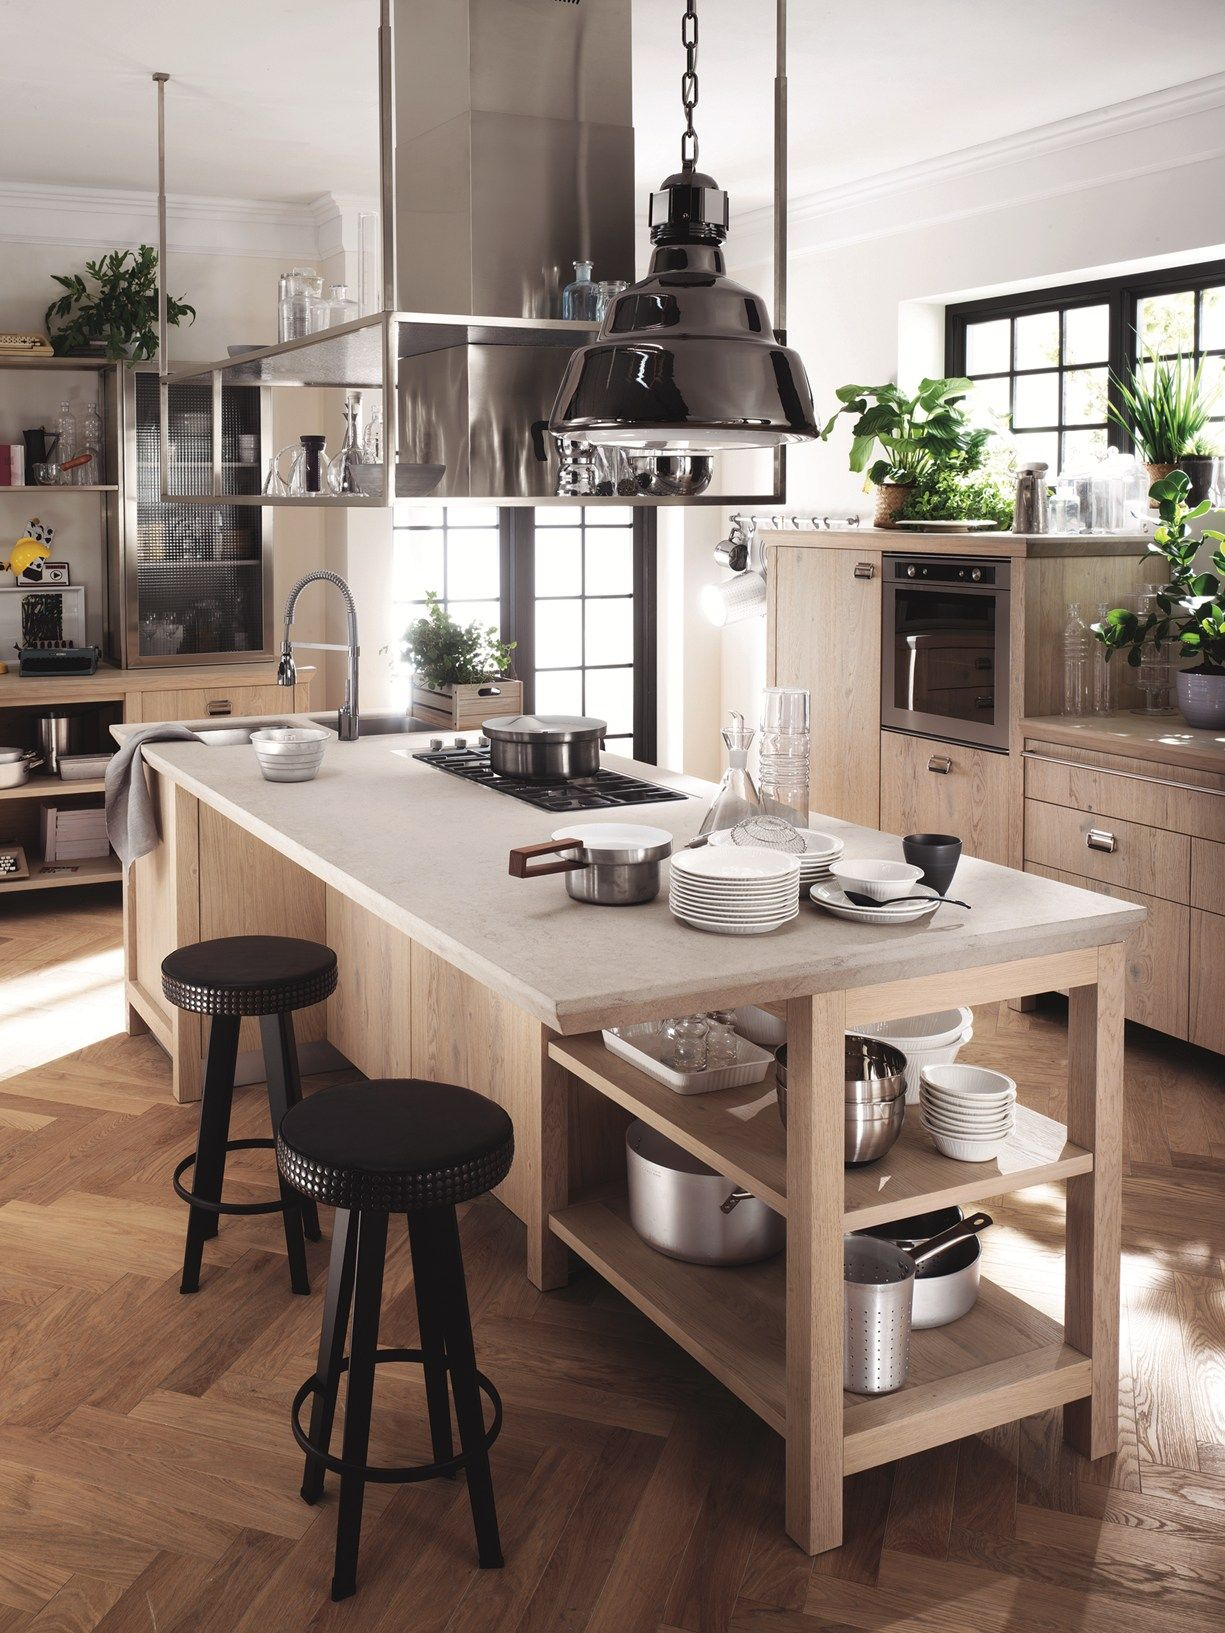 Kitchen islands designs  Diesel with Scavolini the other side of the kitchen Anima vintage